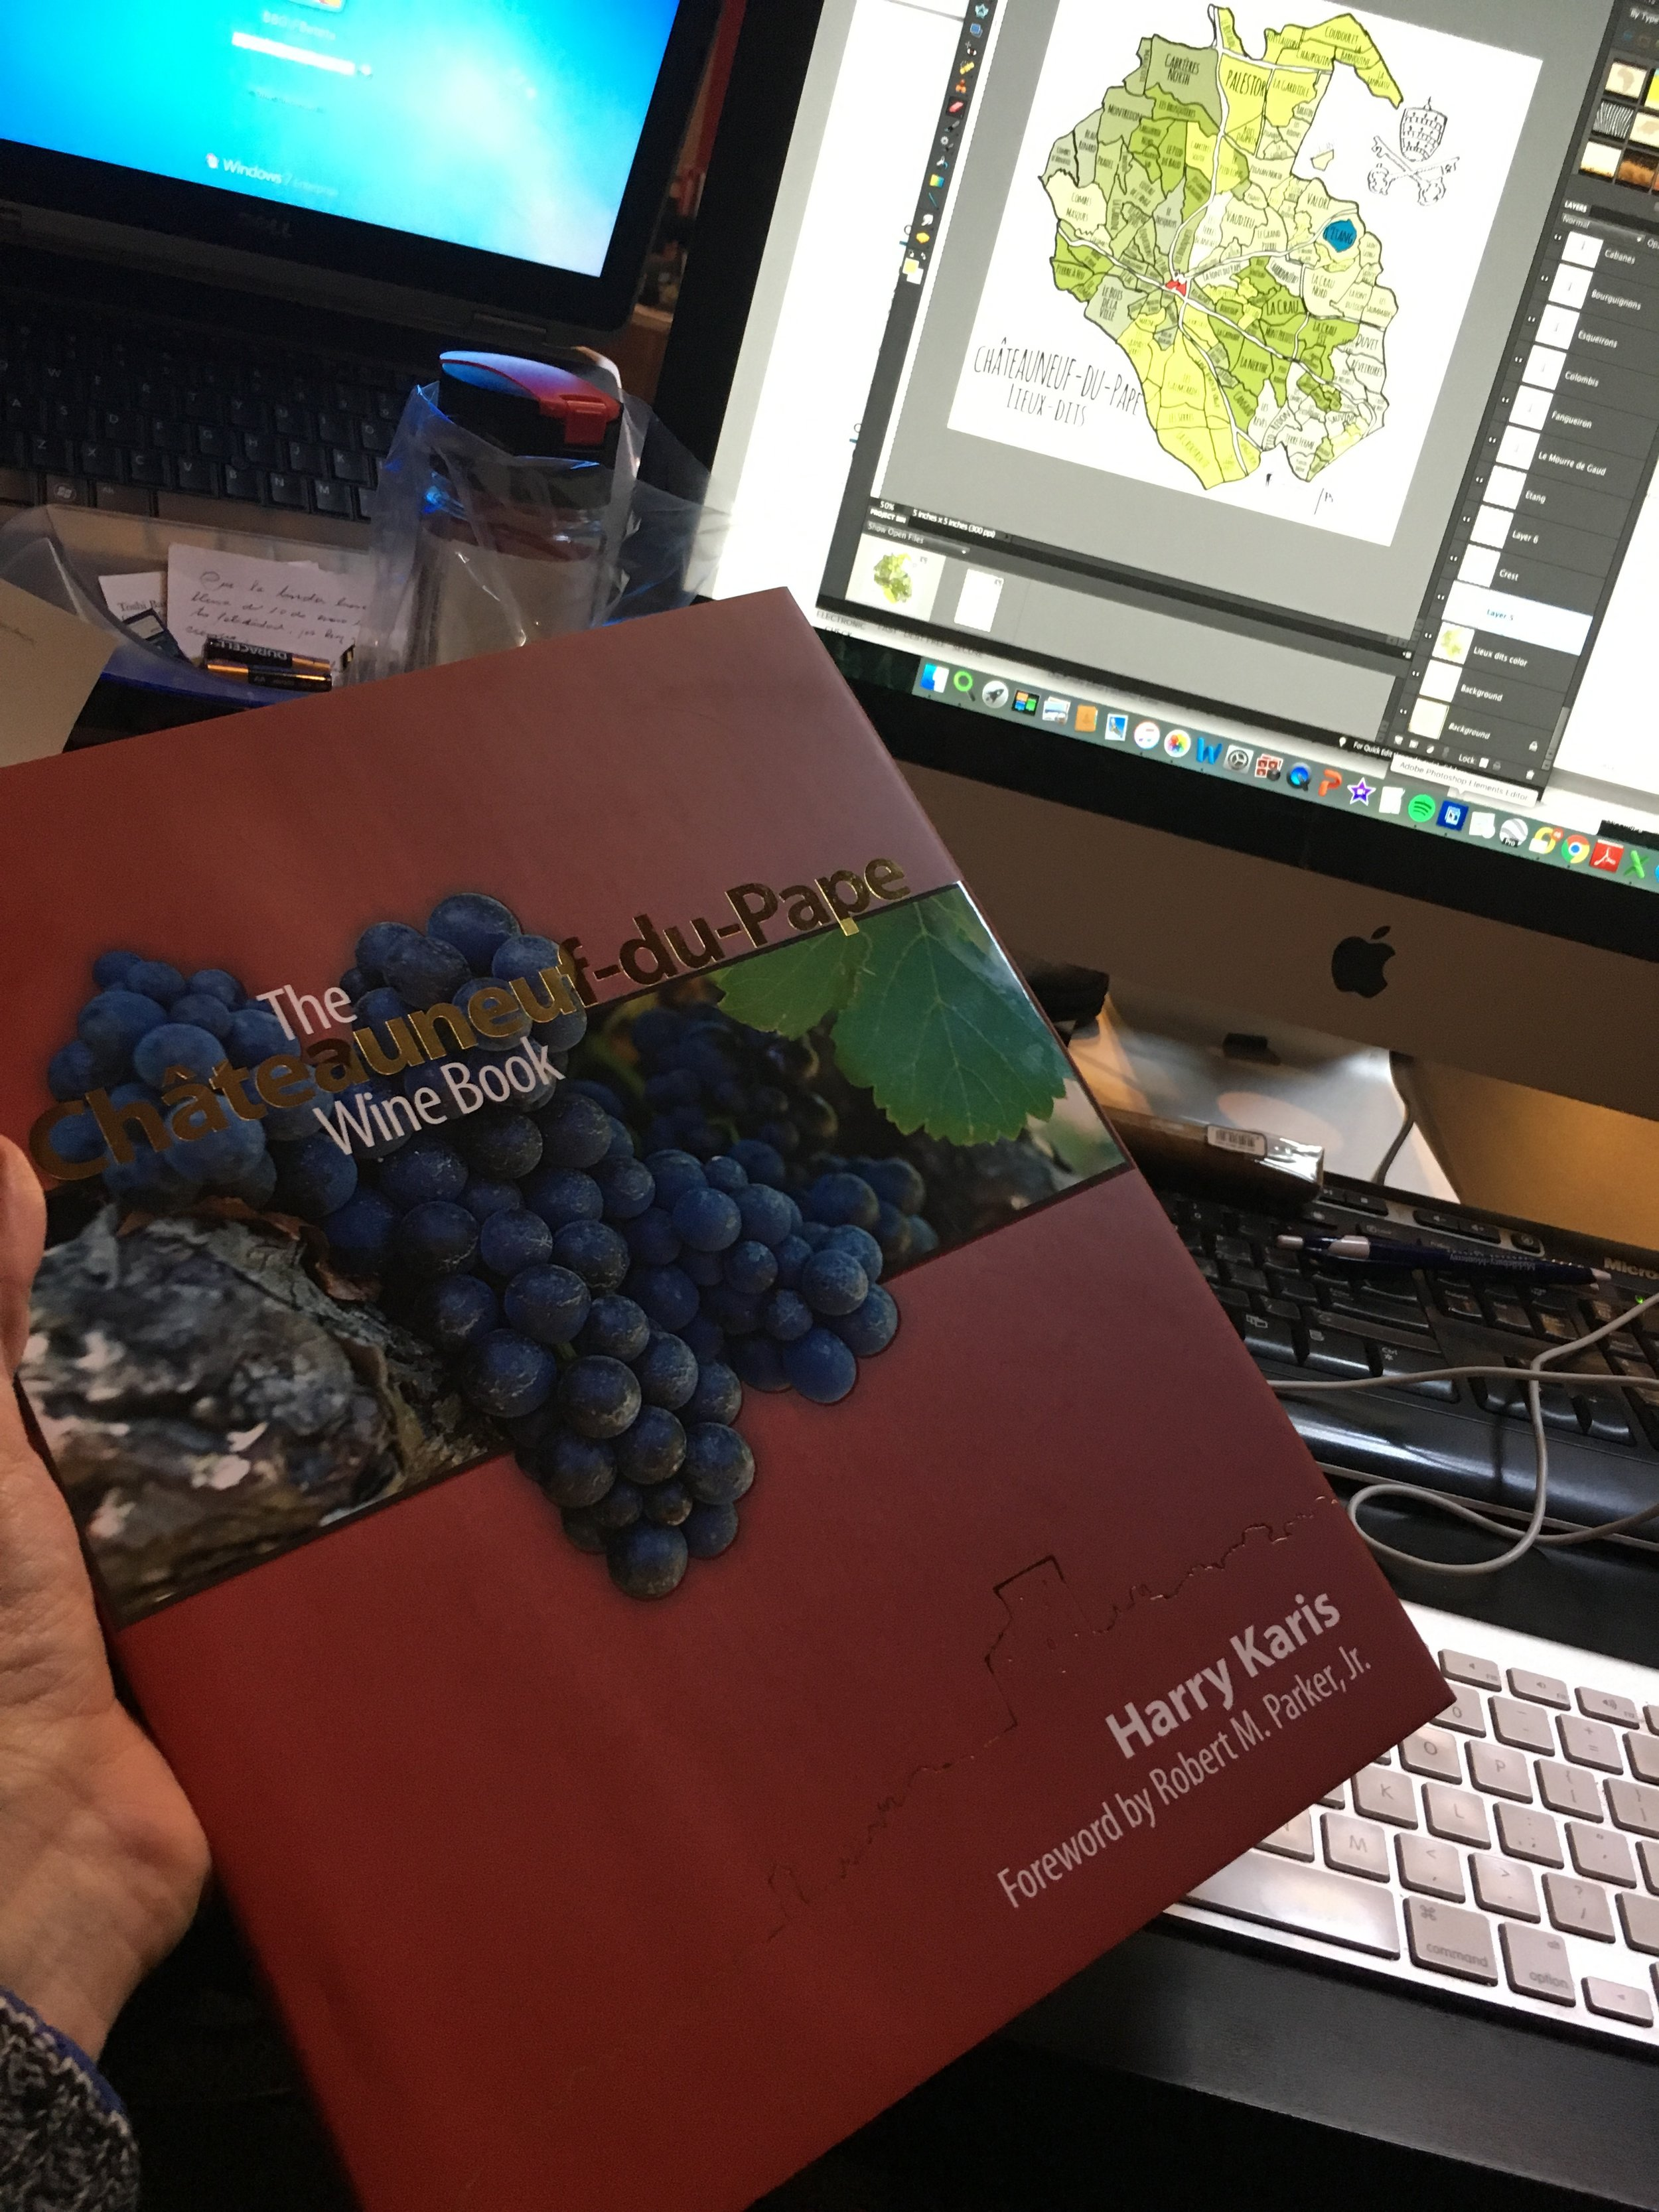 The Châteaneuf-du-Pape Wine book by Harry Karis.